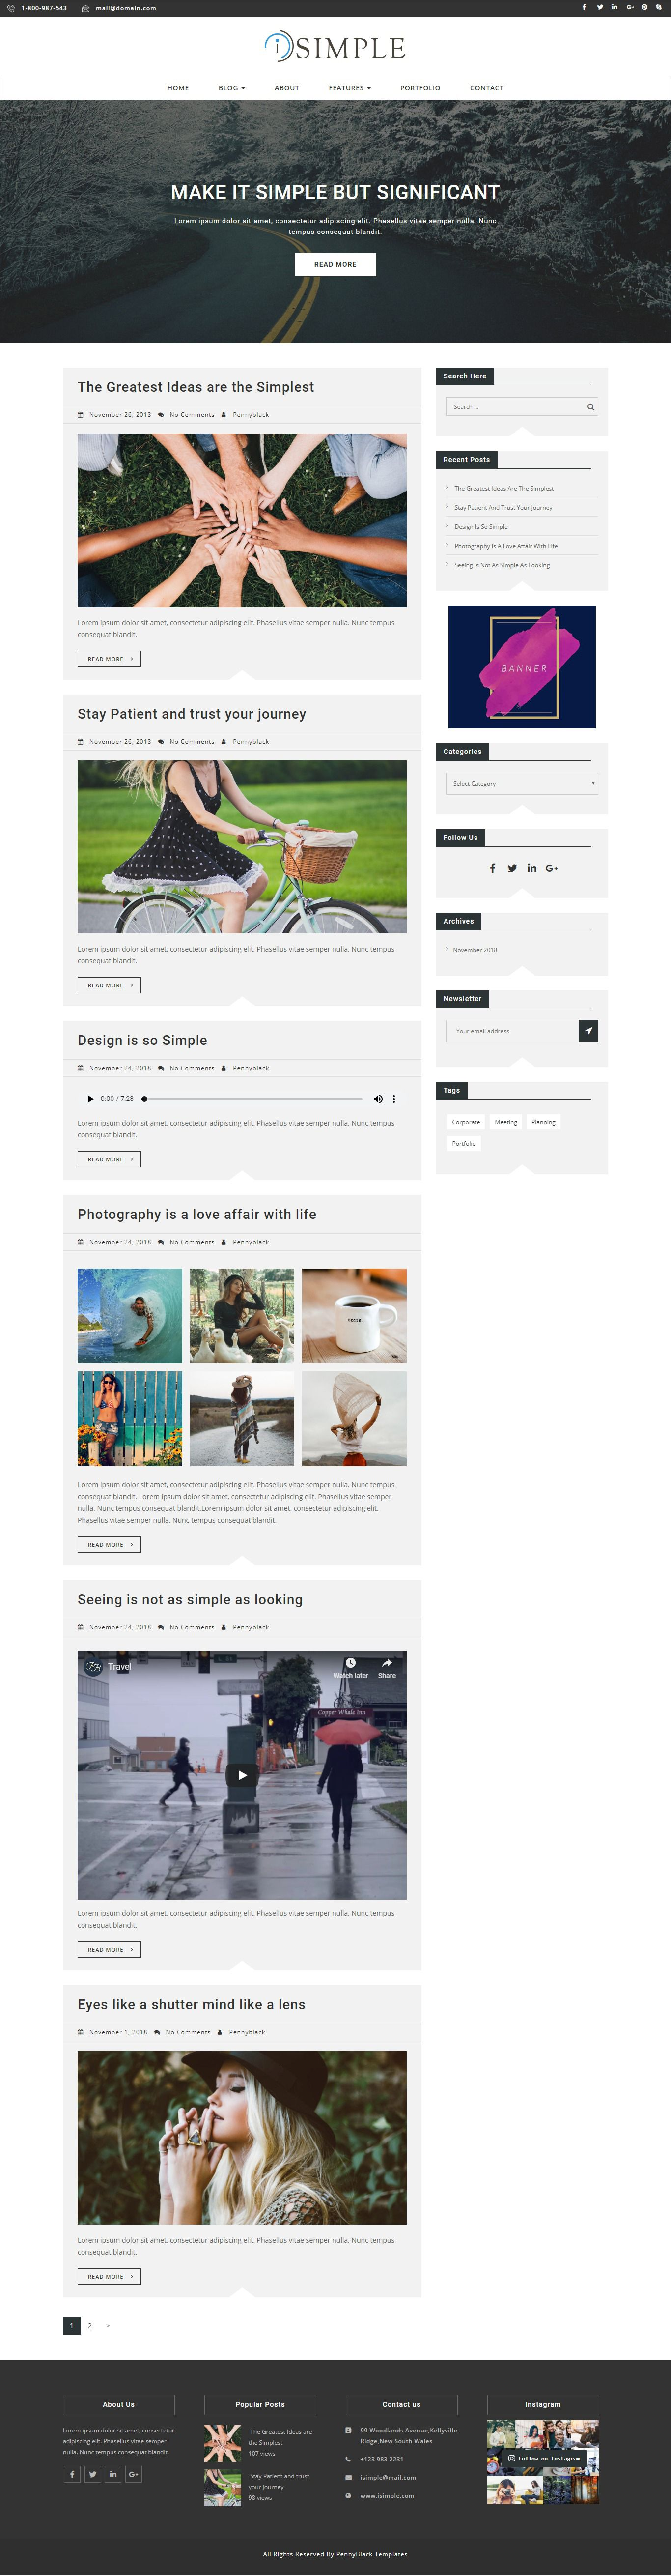 iSimple - WordPress Blog Theme Screenshot 1